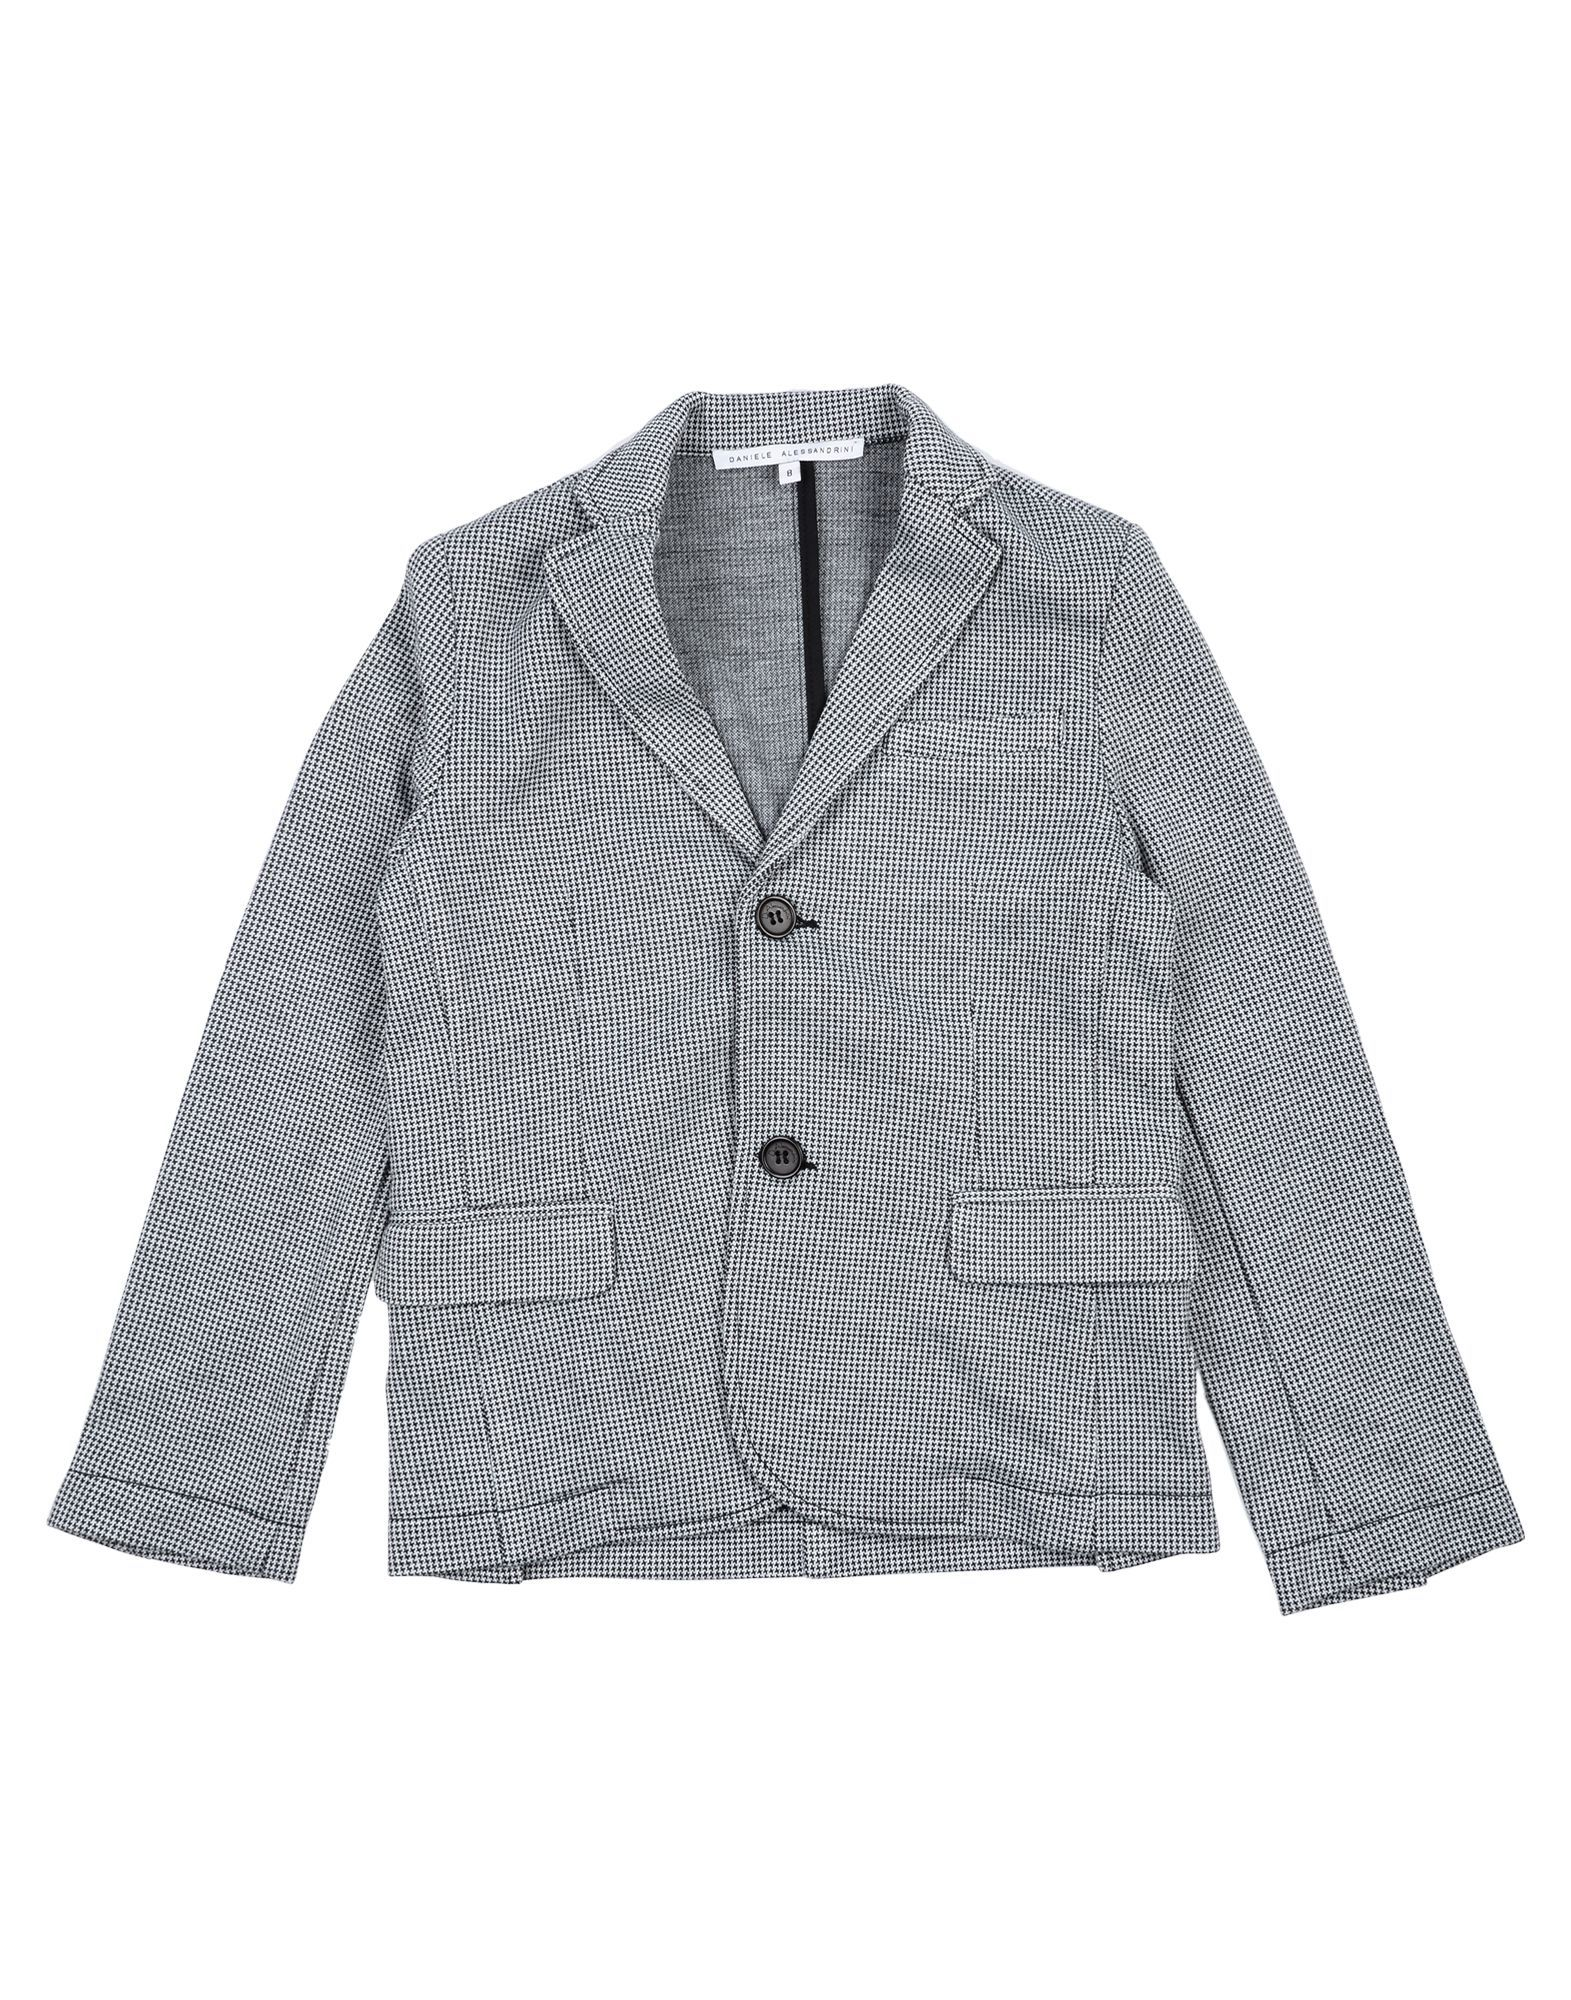 SUITS AND JACKETS Boy Daniele Alessandrini Black Polyester